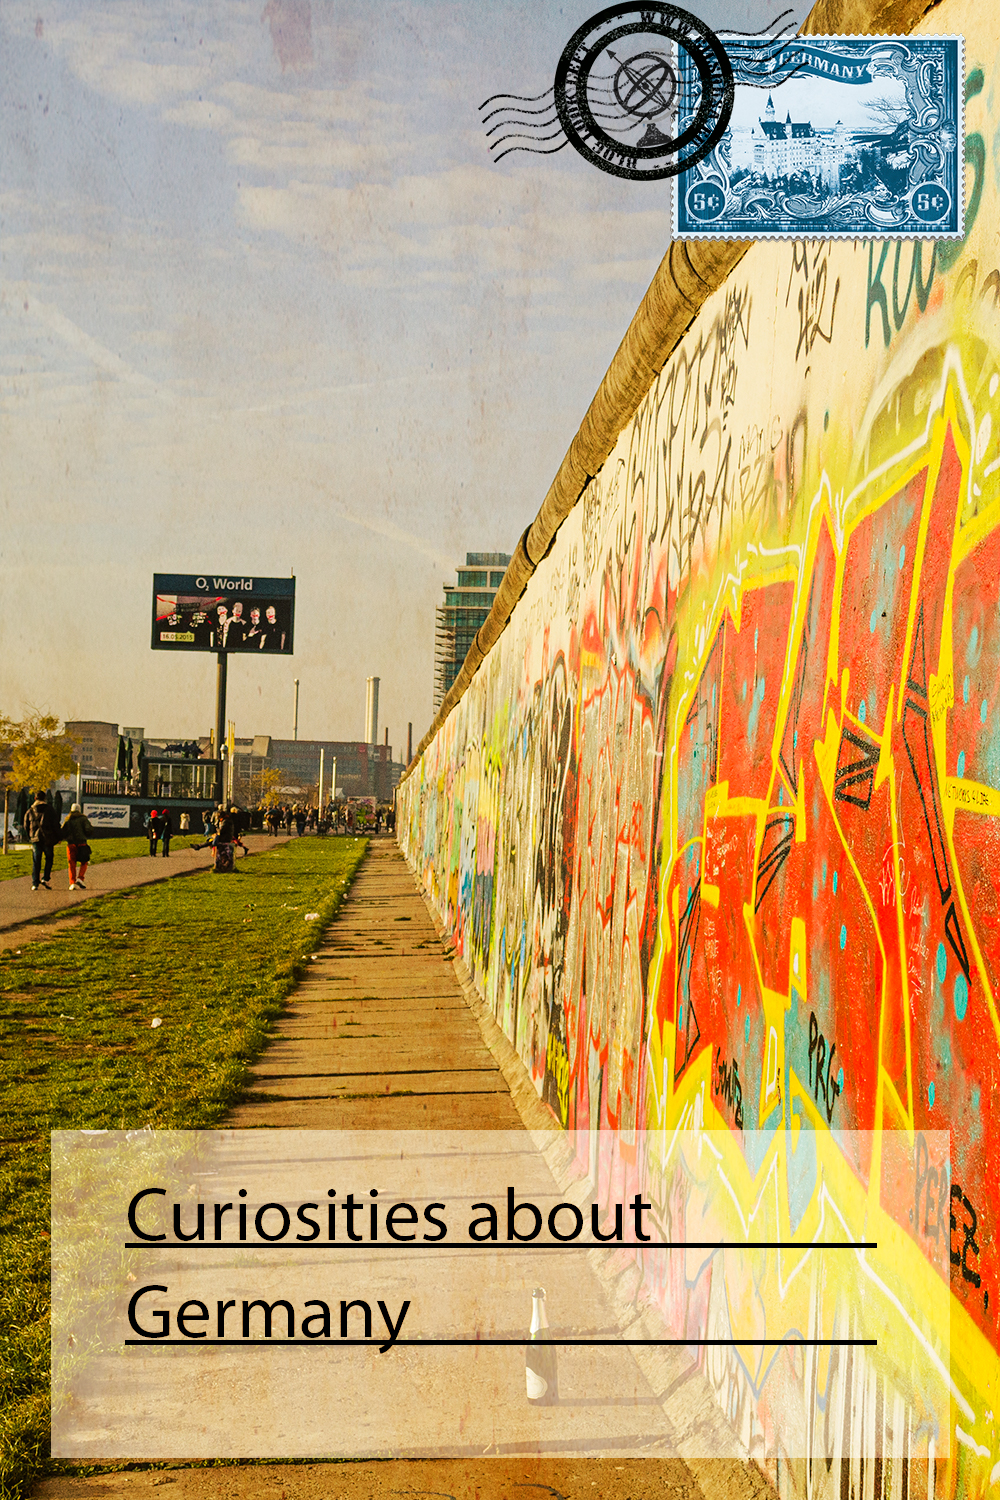 Curiosities about Germany